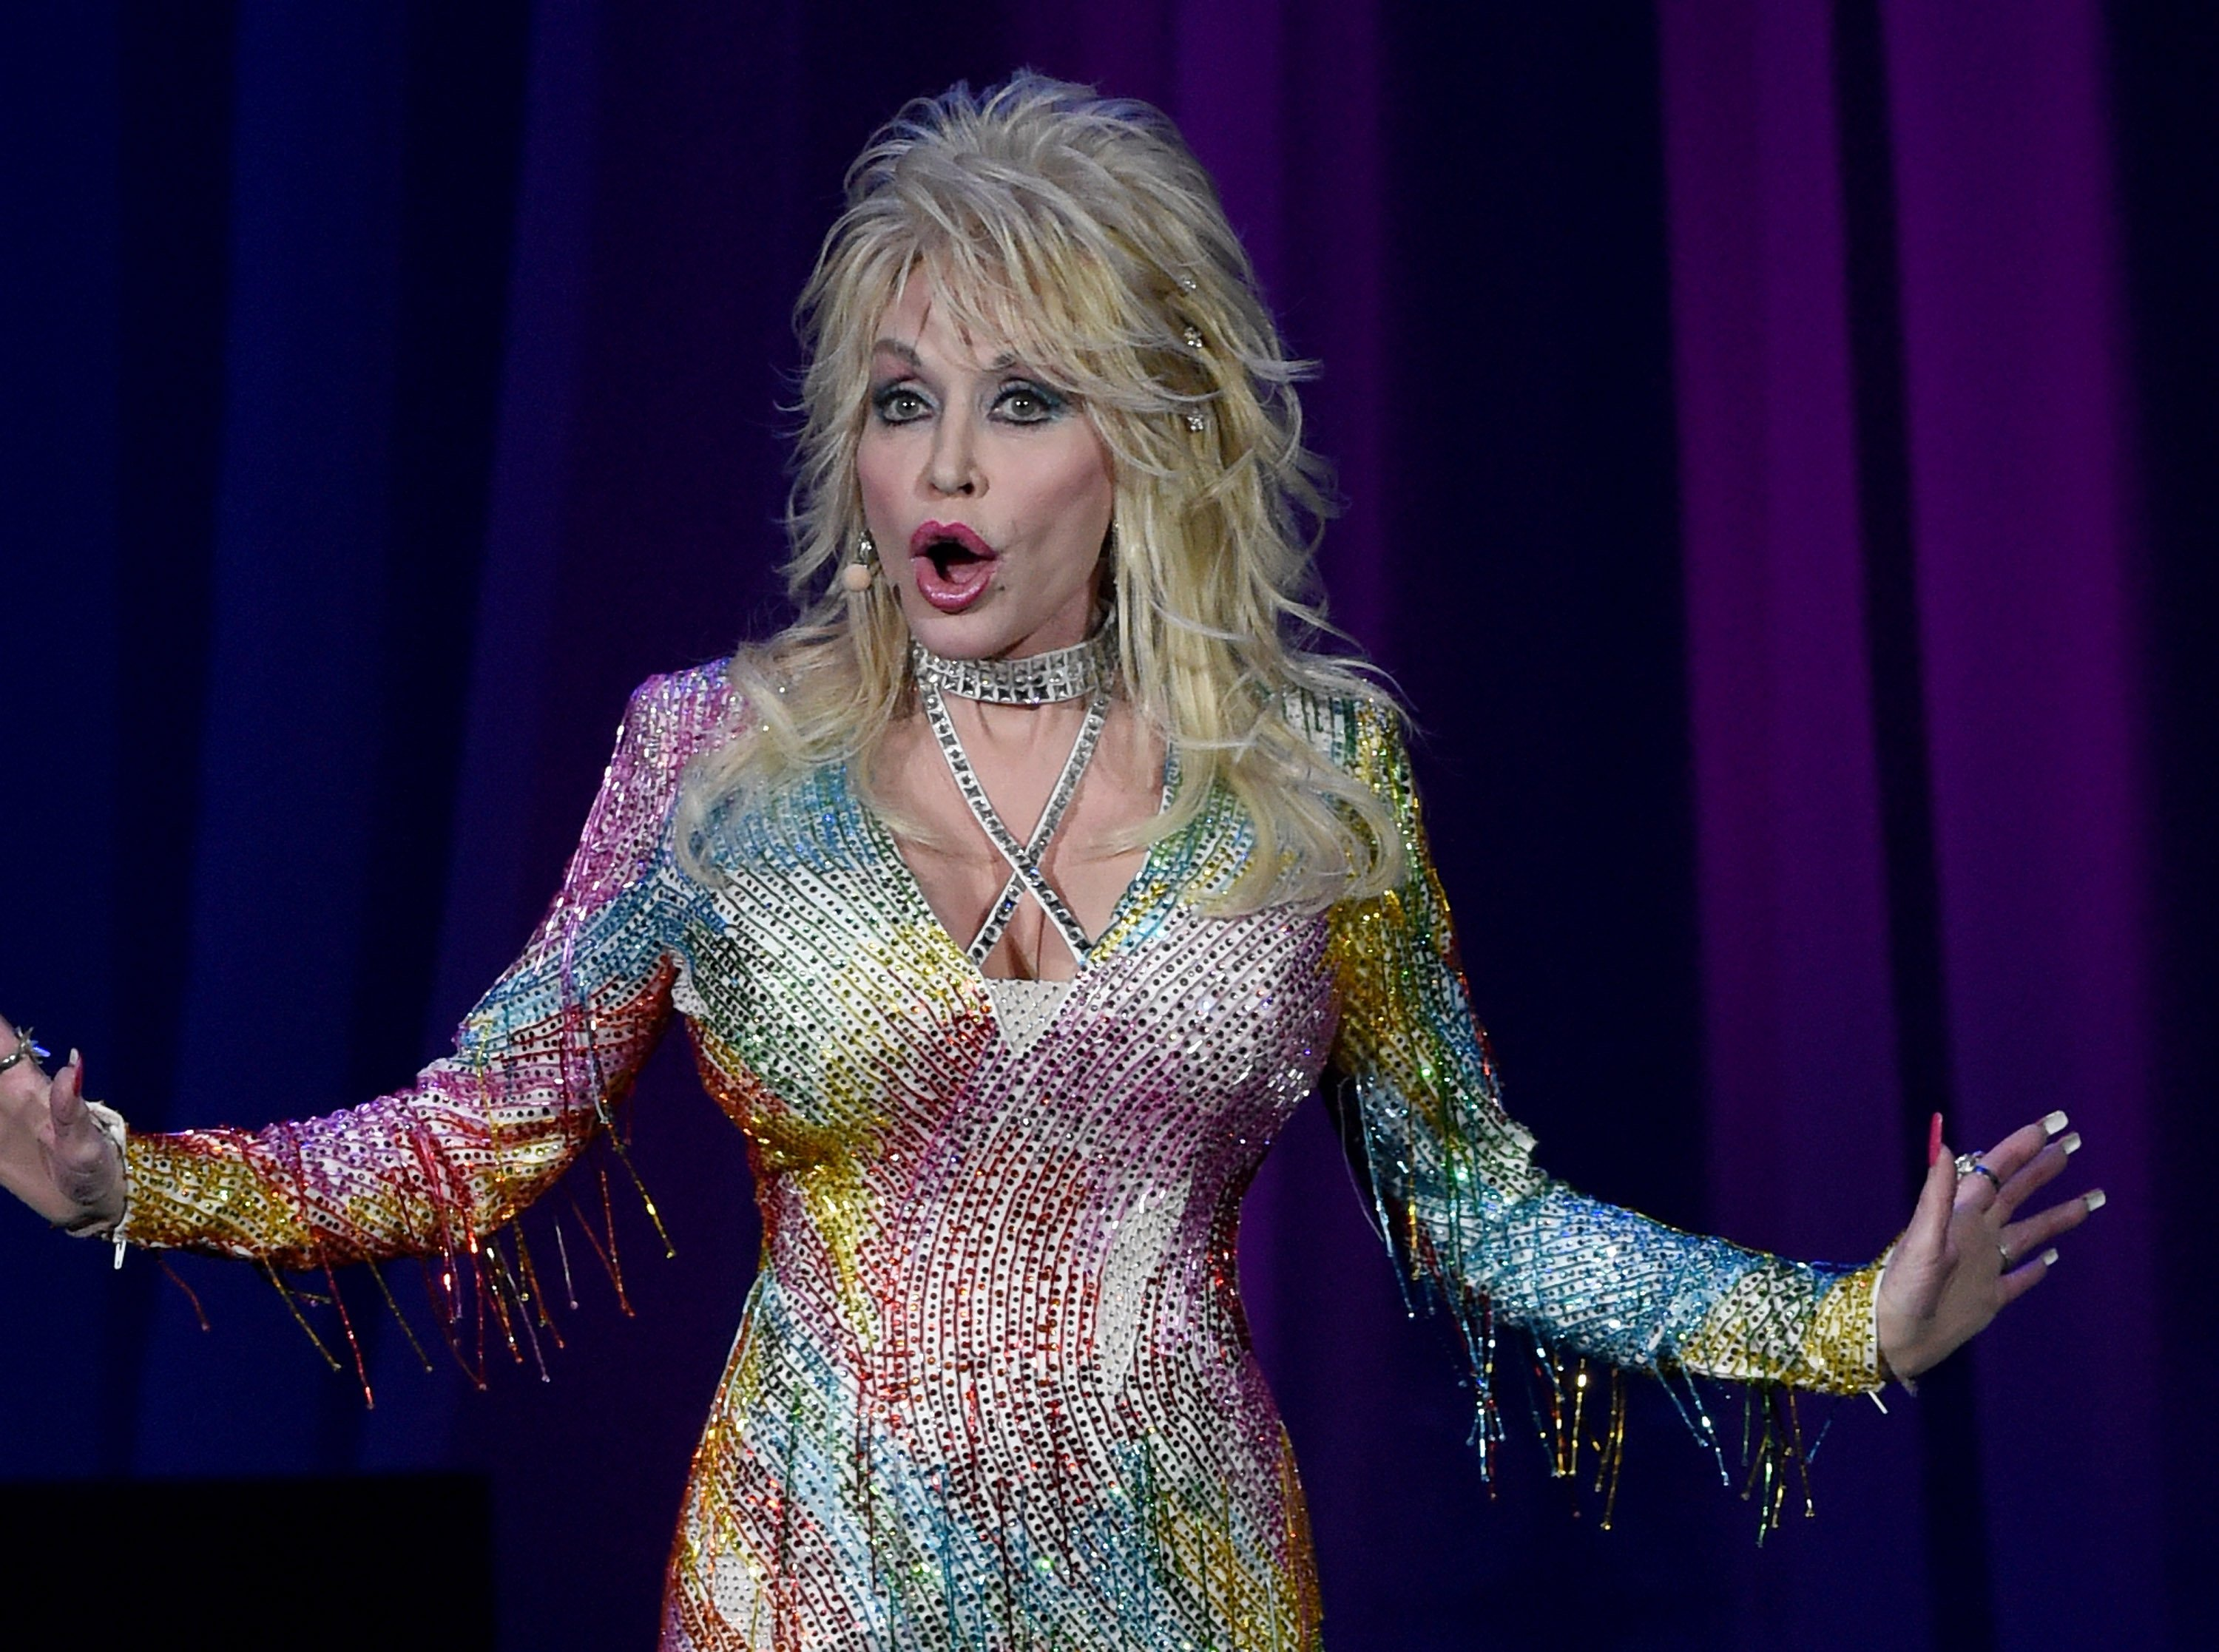 Dolly Parton: Pure & Simple Benefiting The Opry Trust Fund im Ryman Auditorium am 1. August 2015. | Quelle: Getty Images